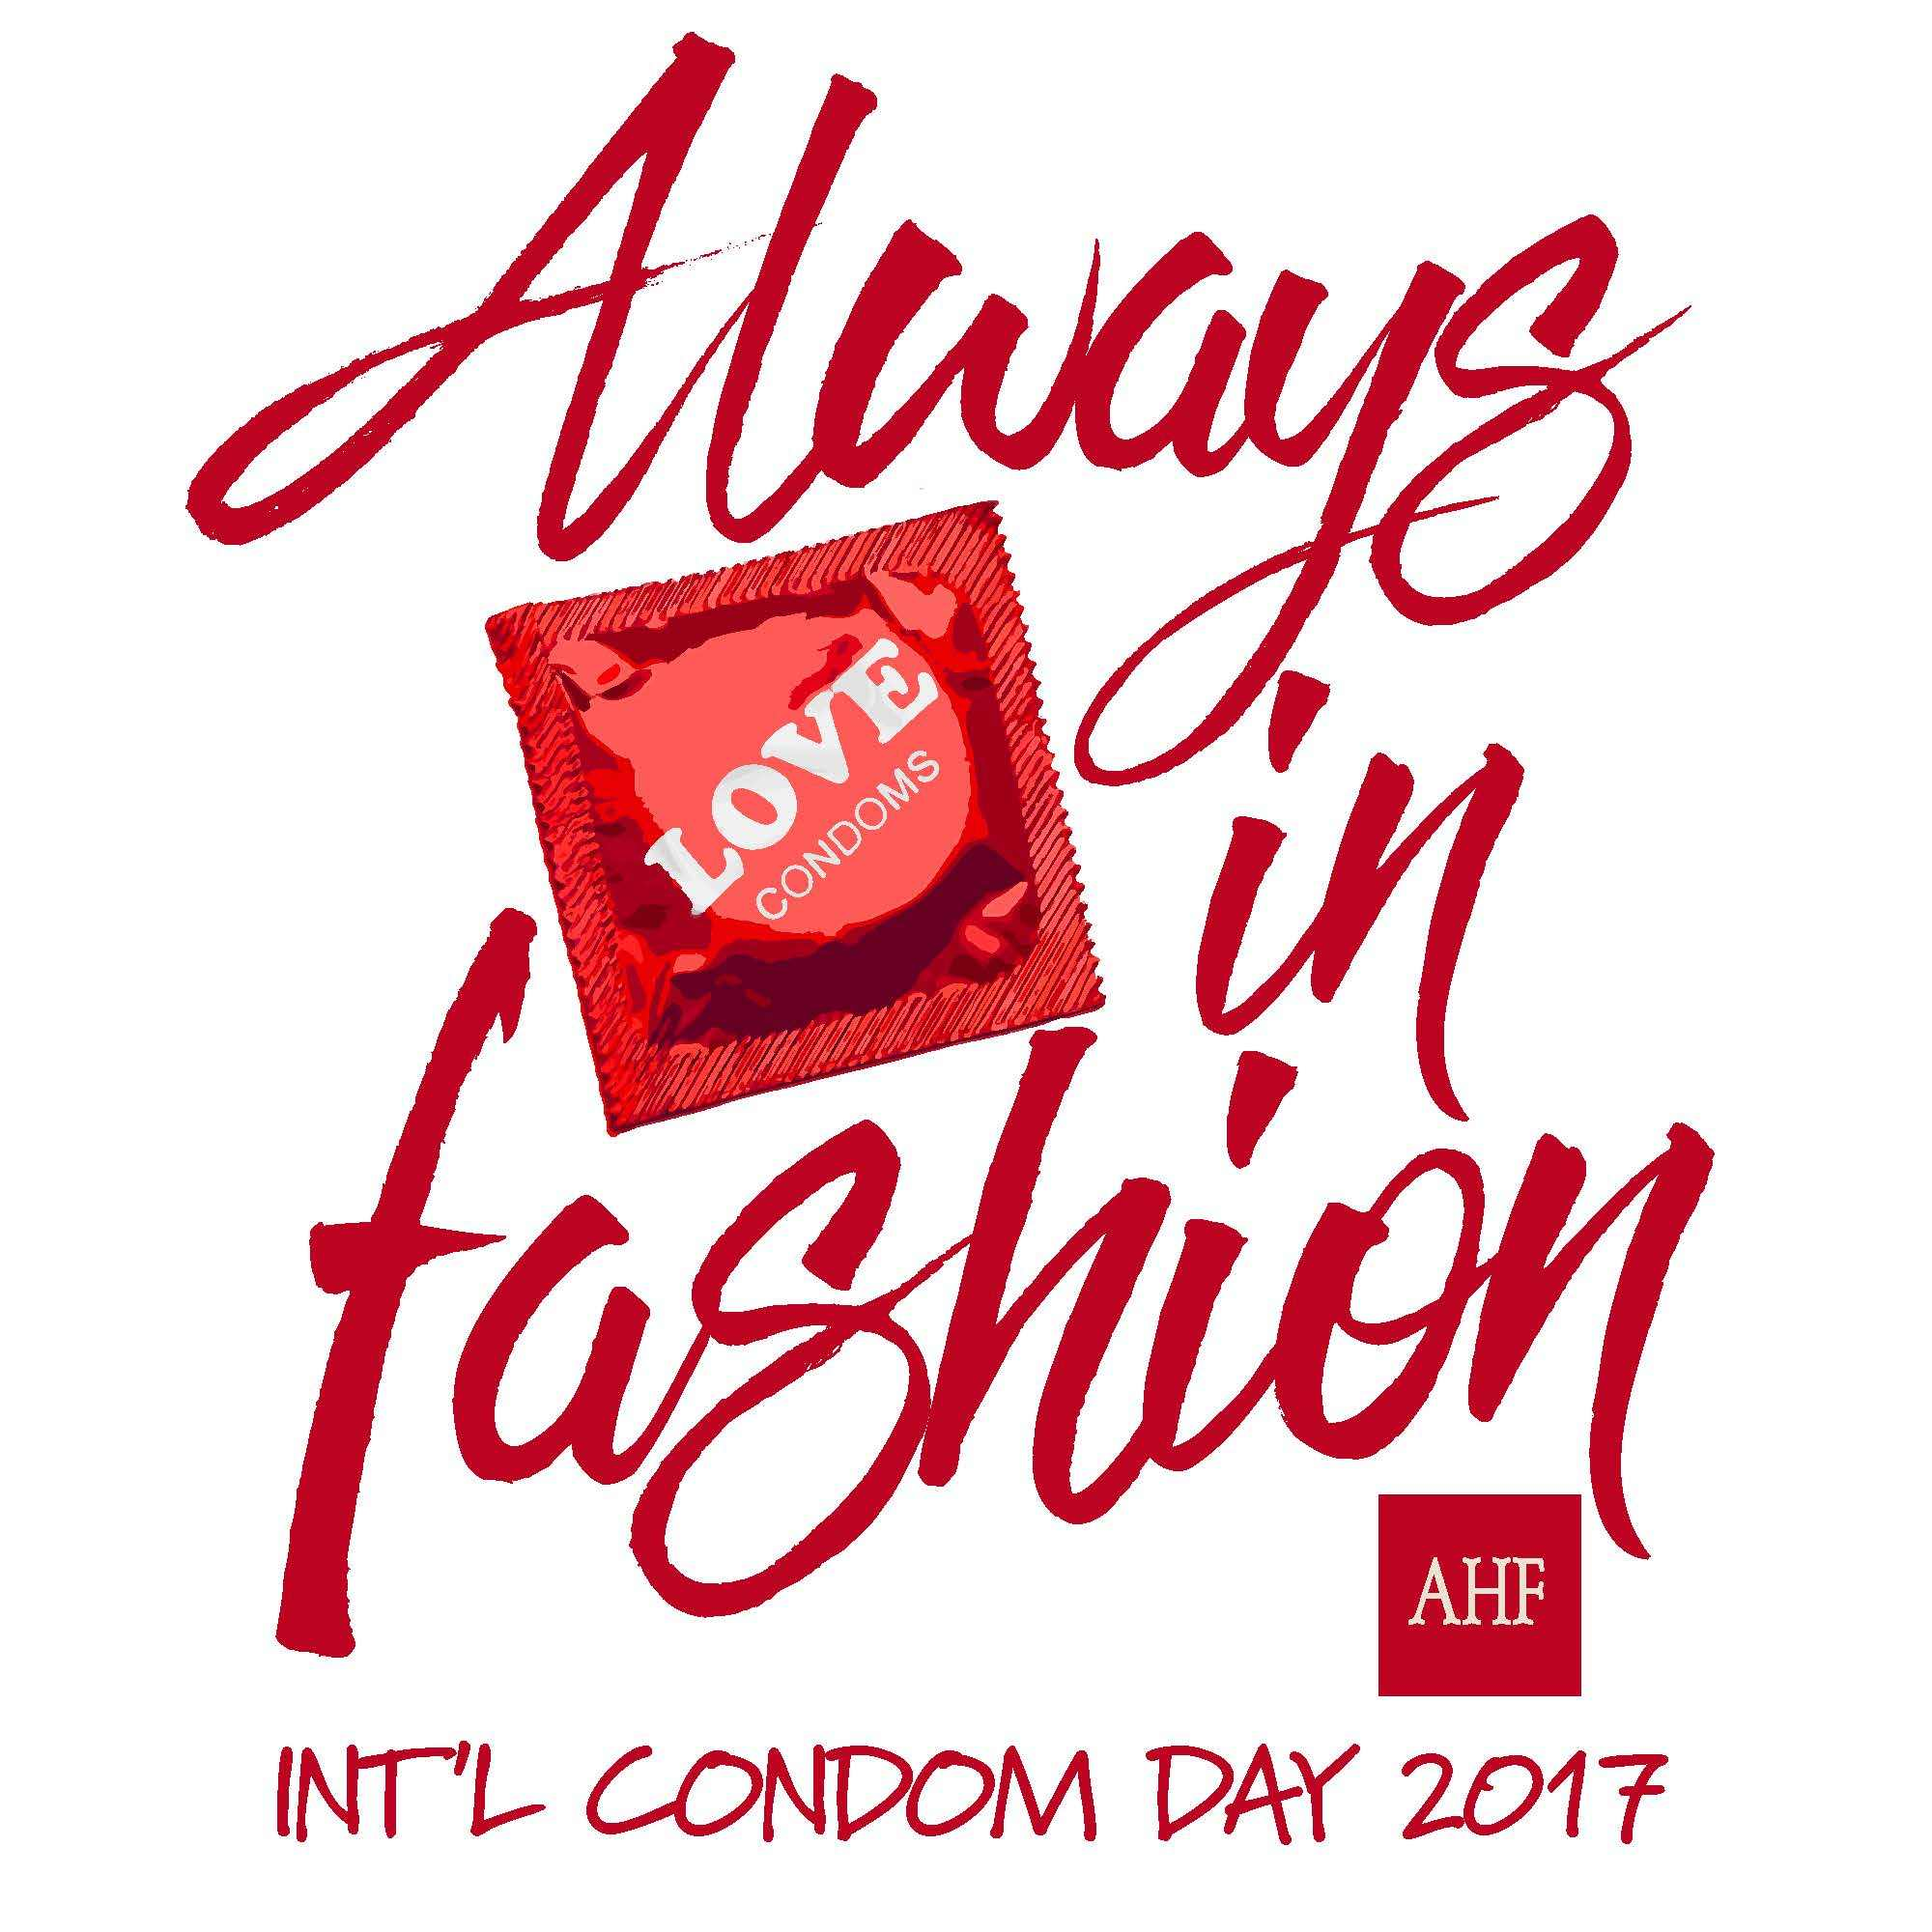 """AHF's 2017 International Condom Day logo says condoms are """"Always in Fashion!"""" (Graphic: Business Wire)"""